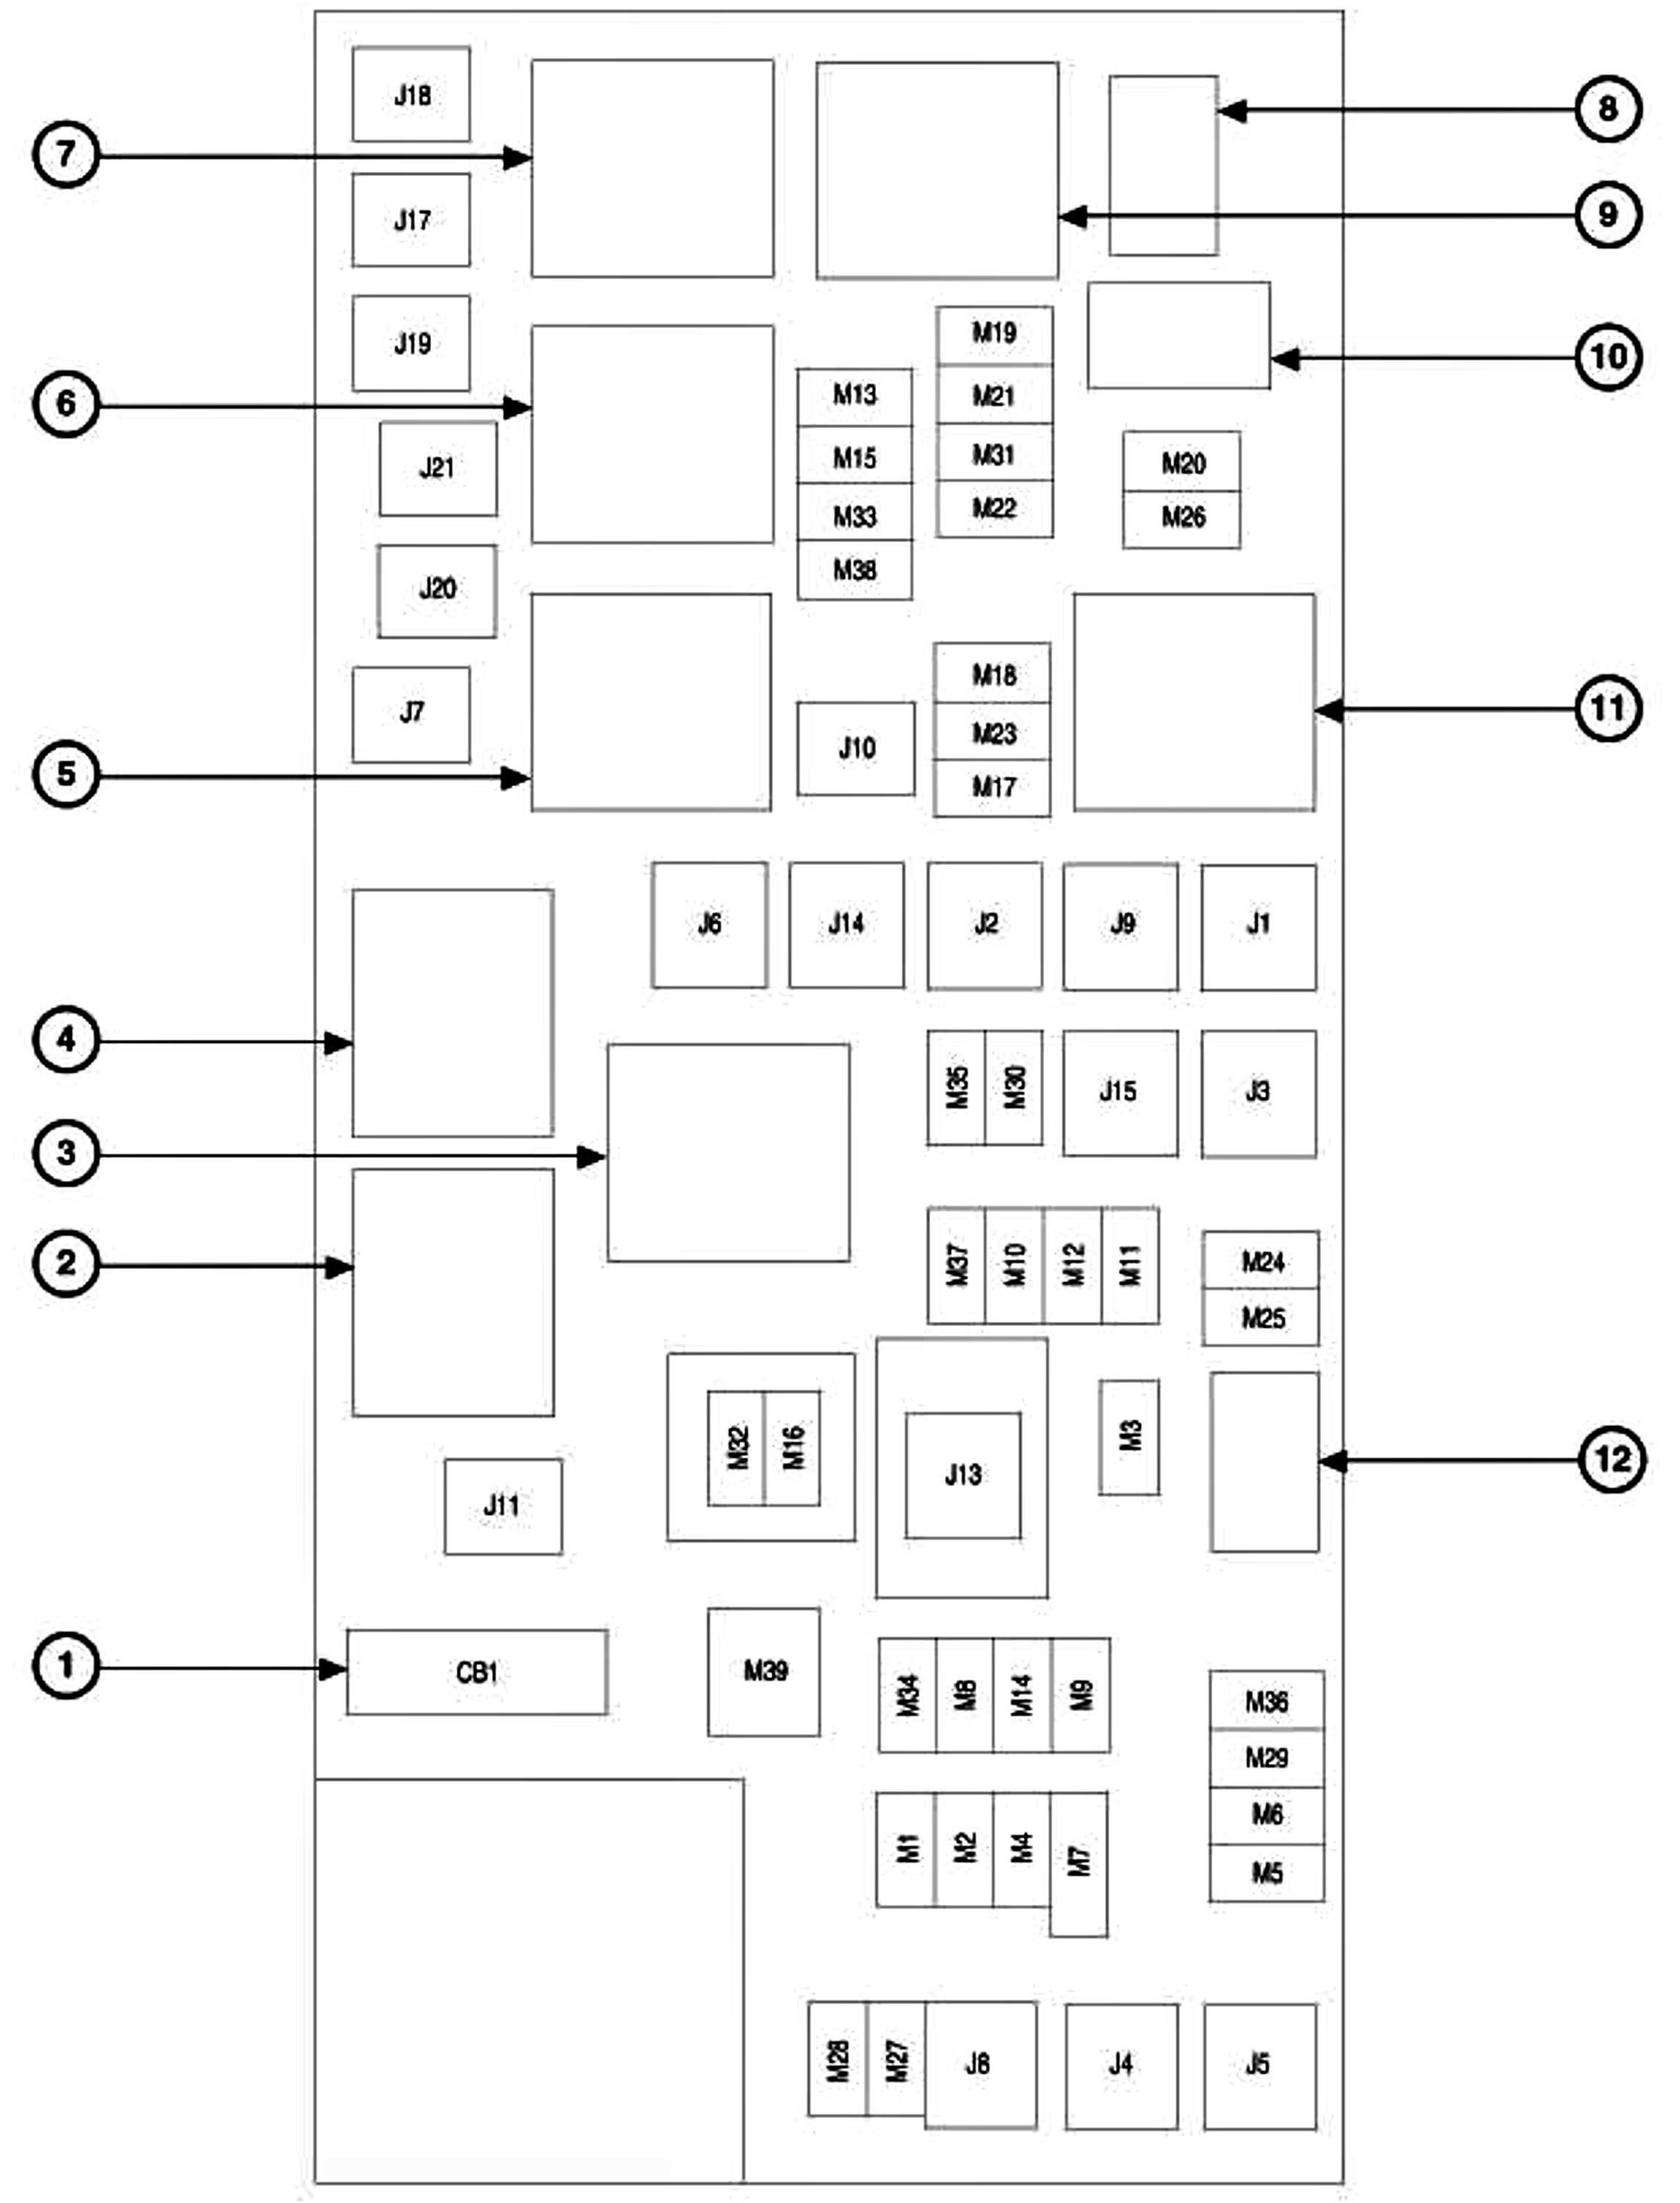 small resolution of 2008 jeep commander fuse box schema diagram database jeep commander fuse box diagram jeep commander fuse box location